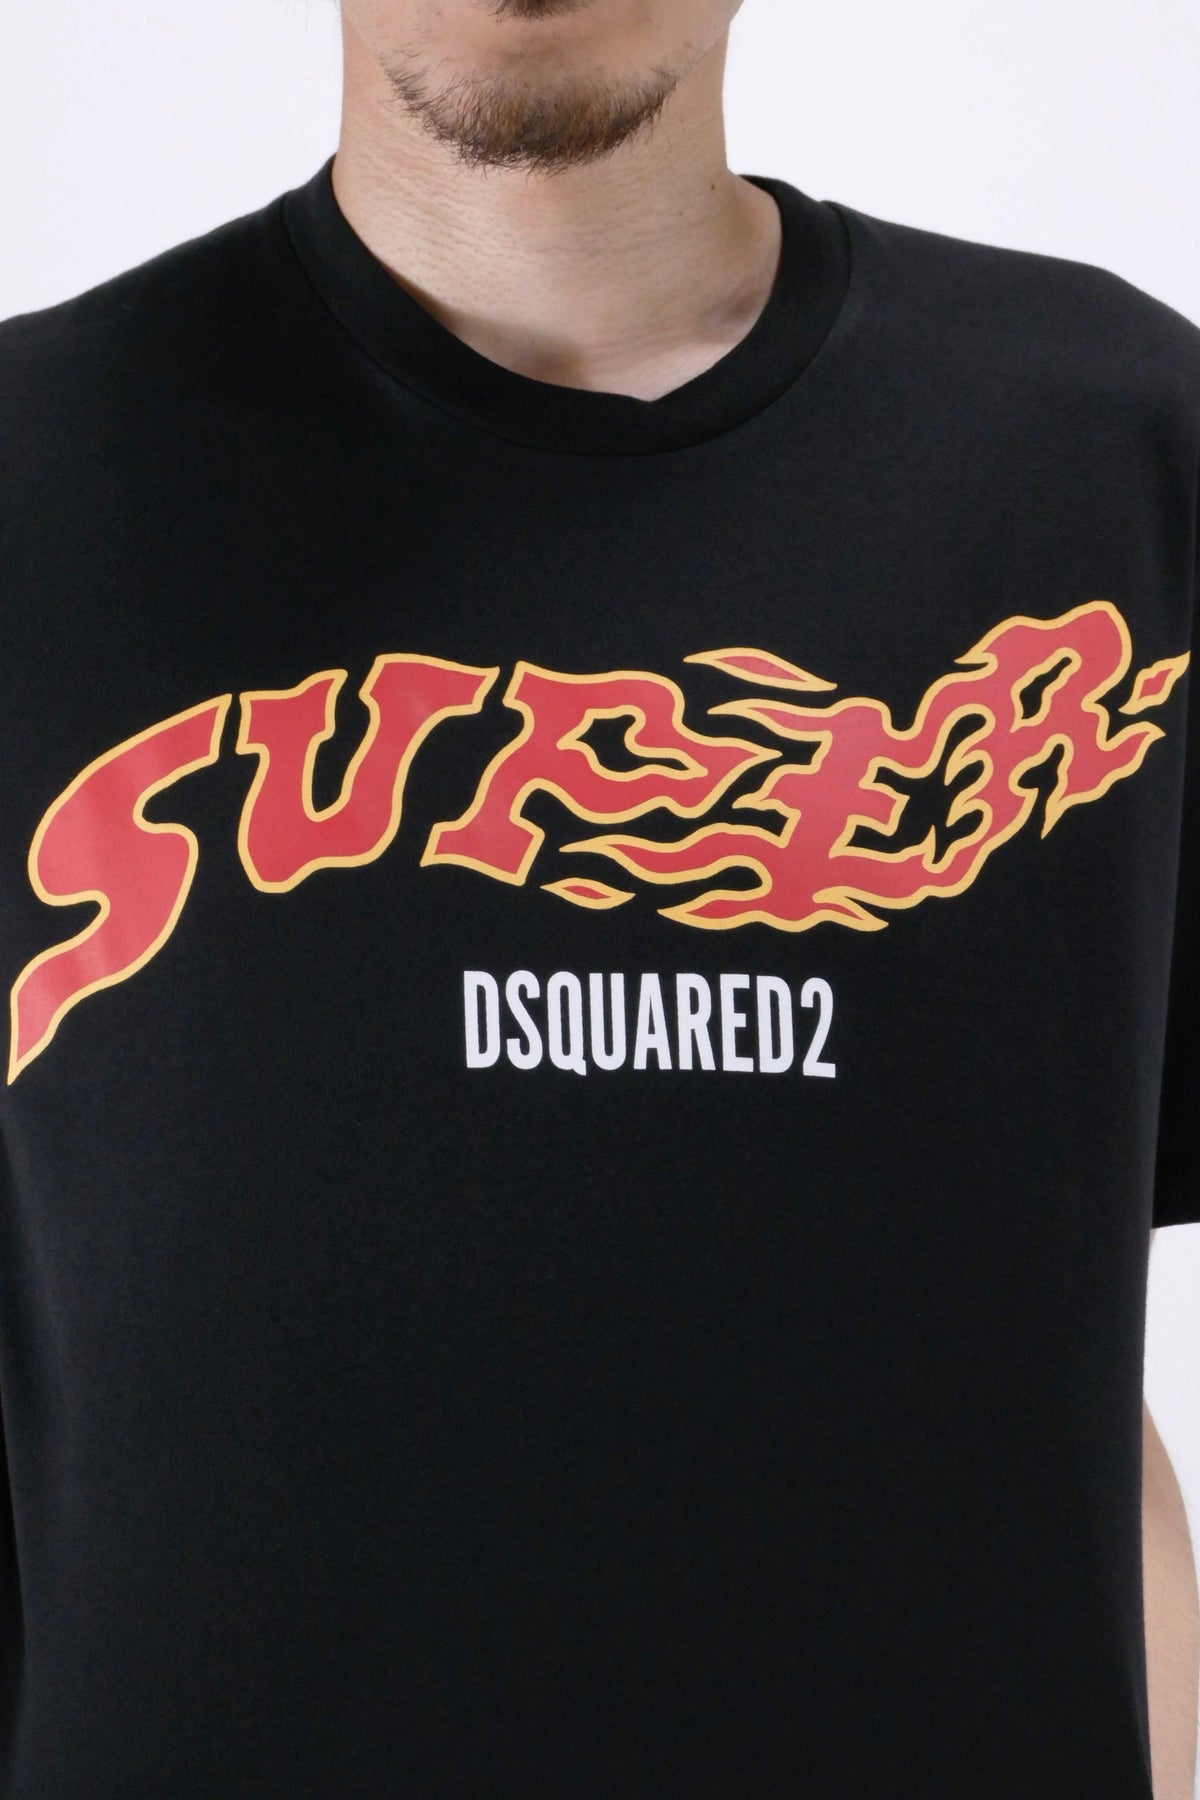 DSquared2 'Super' Logo Tee Black